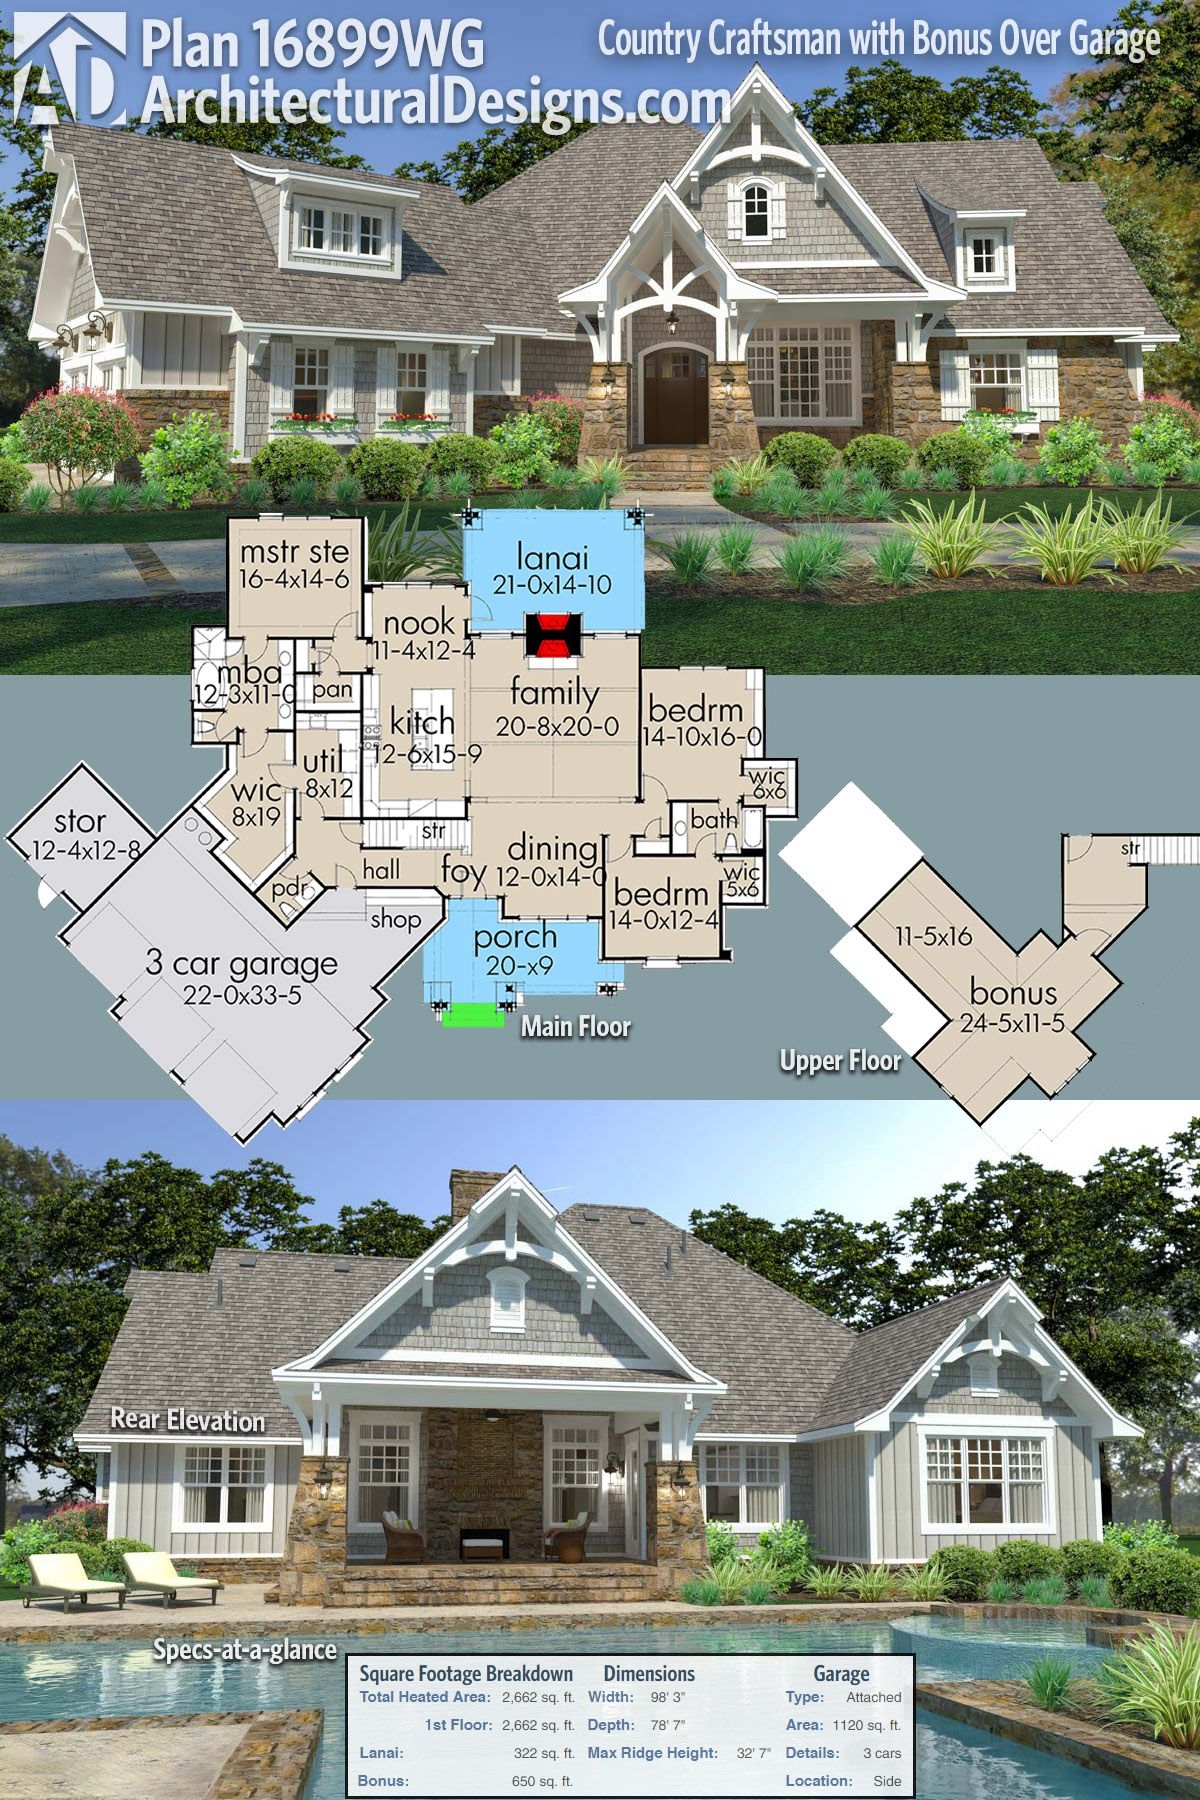 Introducing Architectural Designs Country Craftsman House Plan